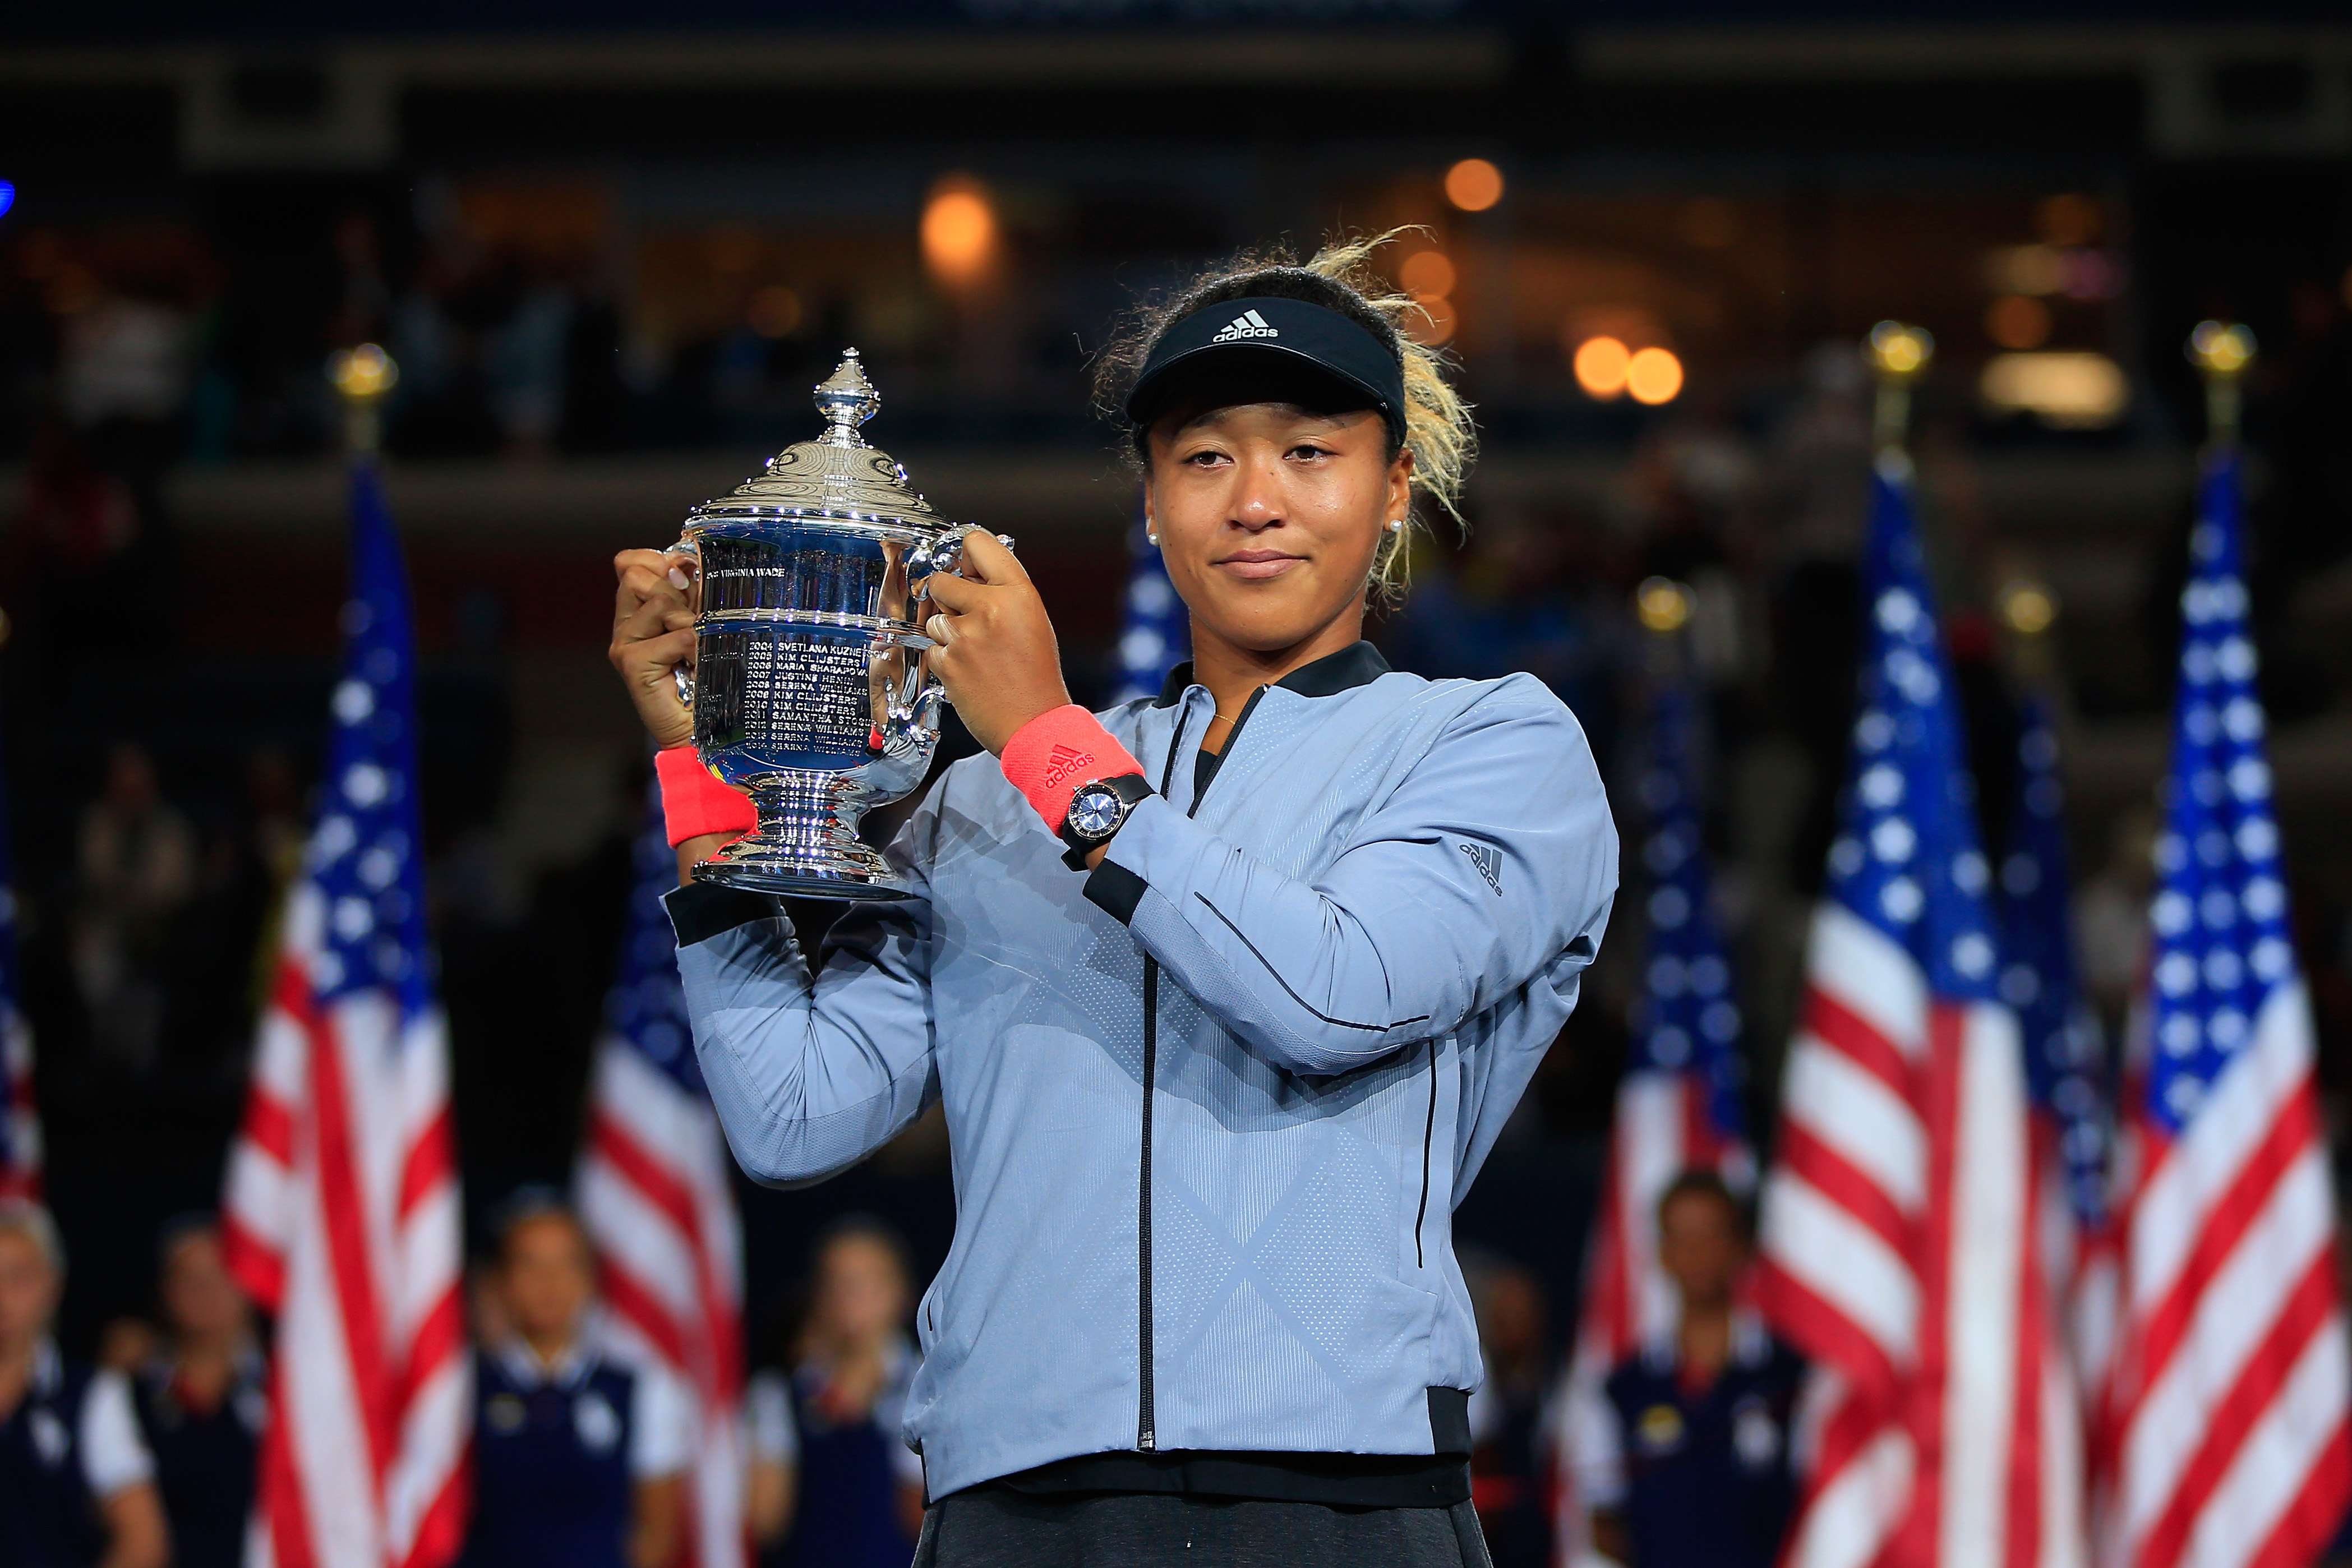 Naomi Osaka of Japan poses with the championship trophy after winning the Women's Singles finals match against Serena Williams of the United States on Day Thirteen of the 2018 US Open at the USTA Billie Jean King National Tennis Center on September 8, 2018, in the Flushing neighborhood of the Queens borough of New York City (Getty Images)